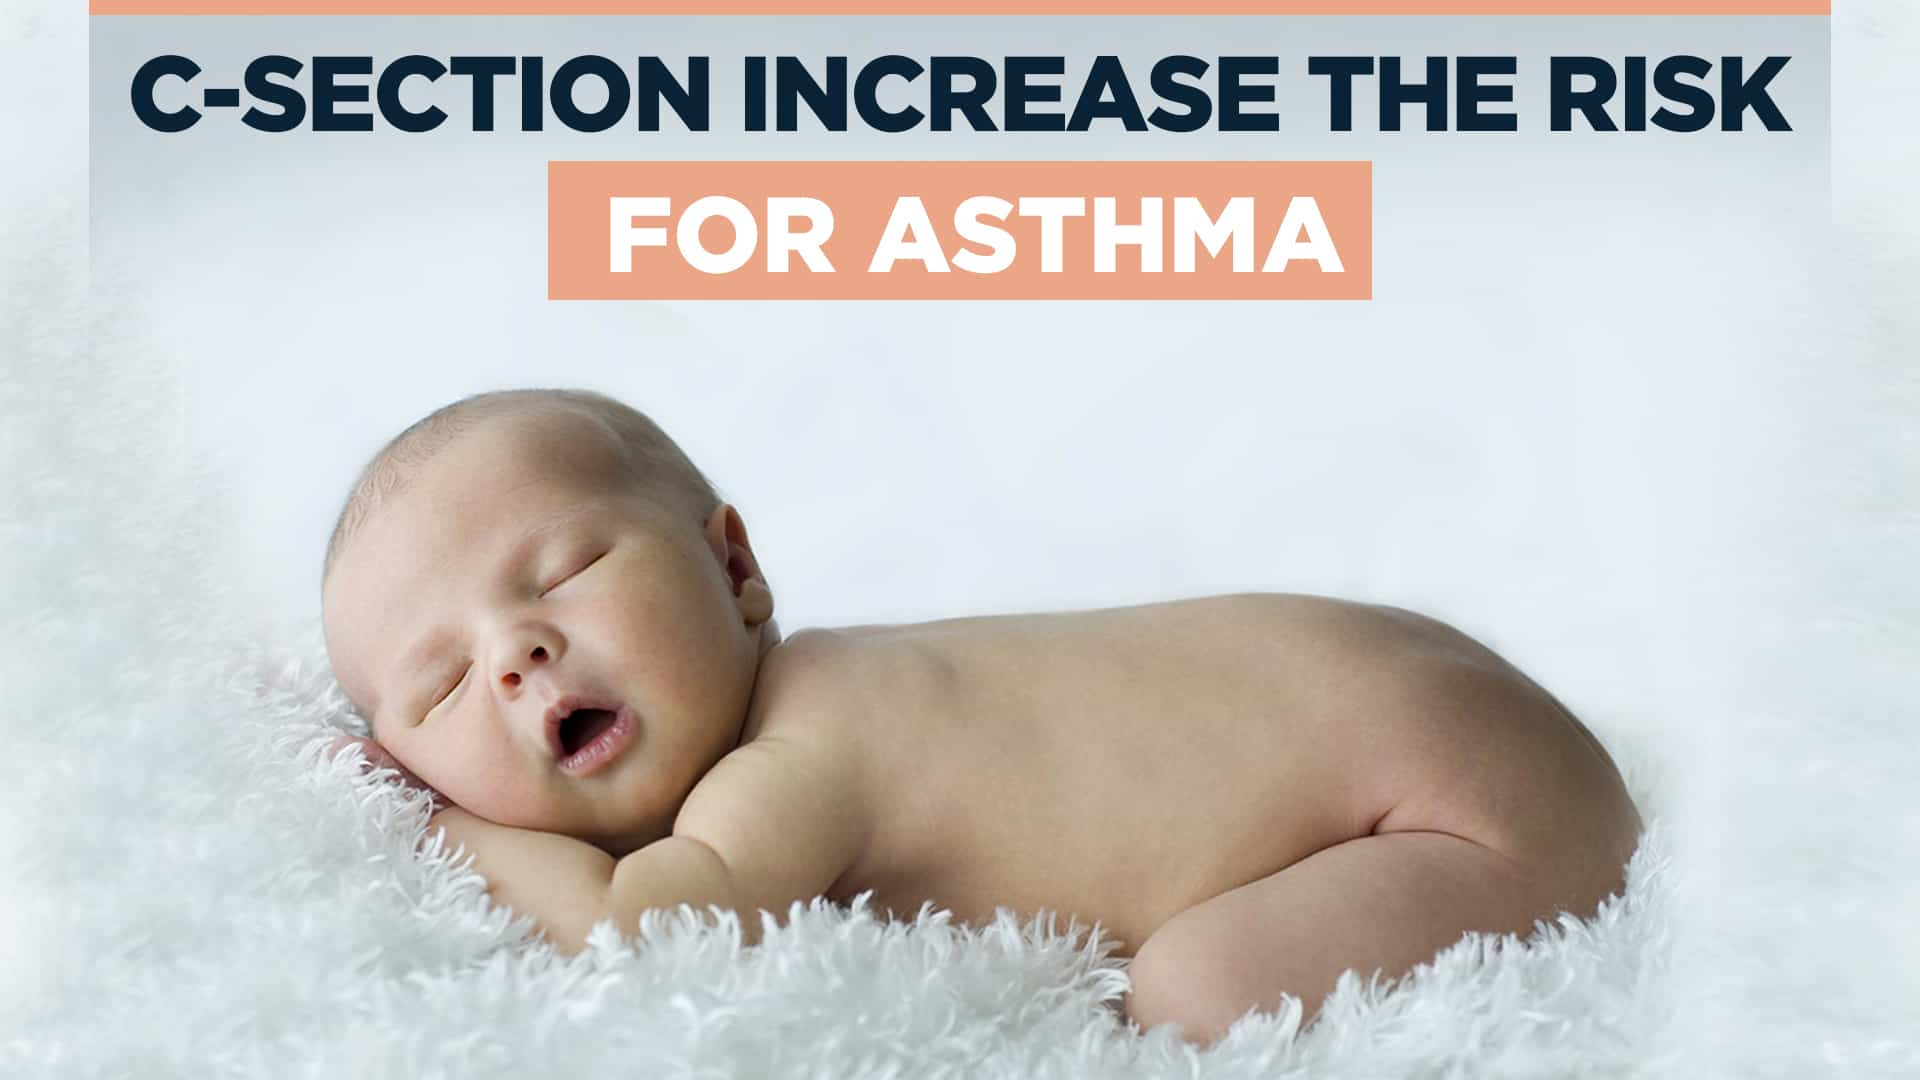 C-section increase the risk for asthma